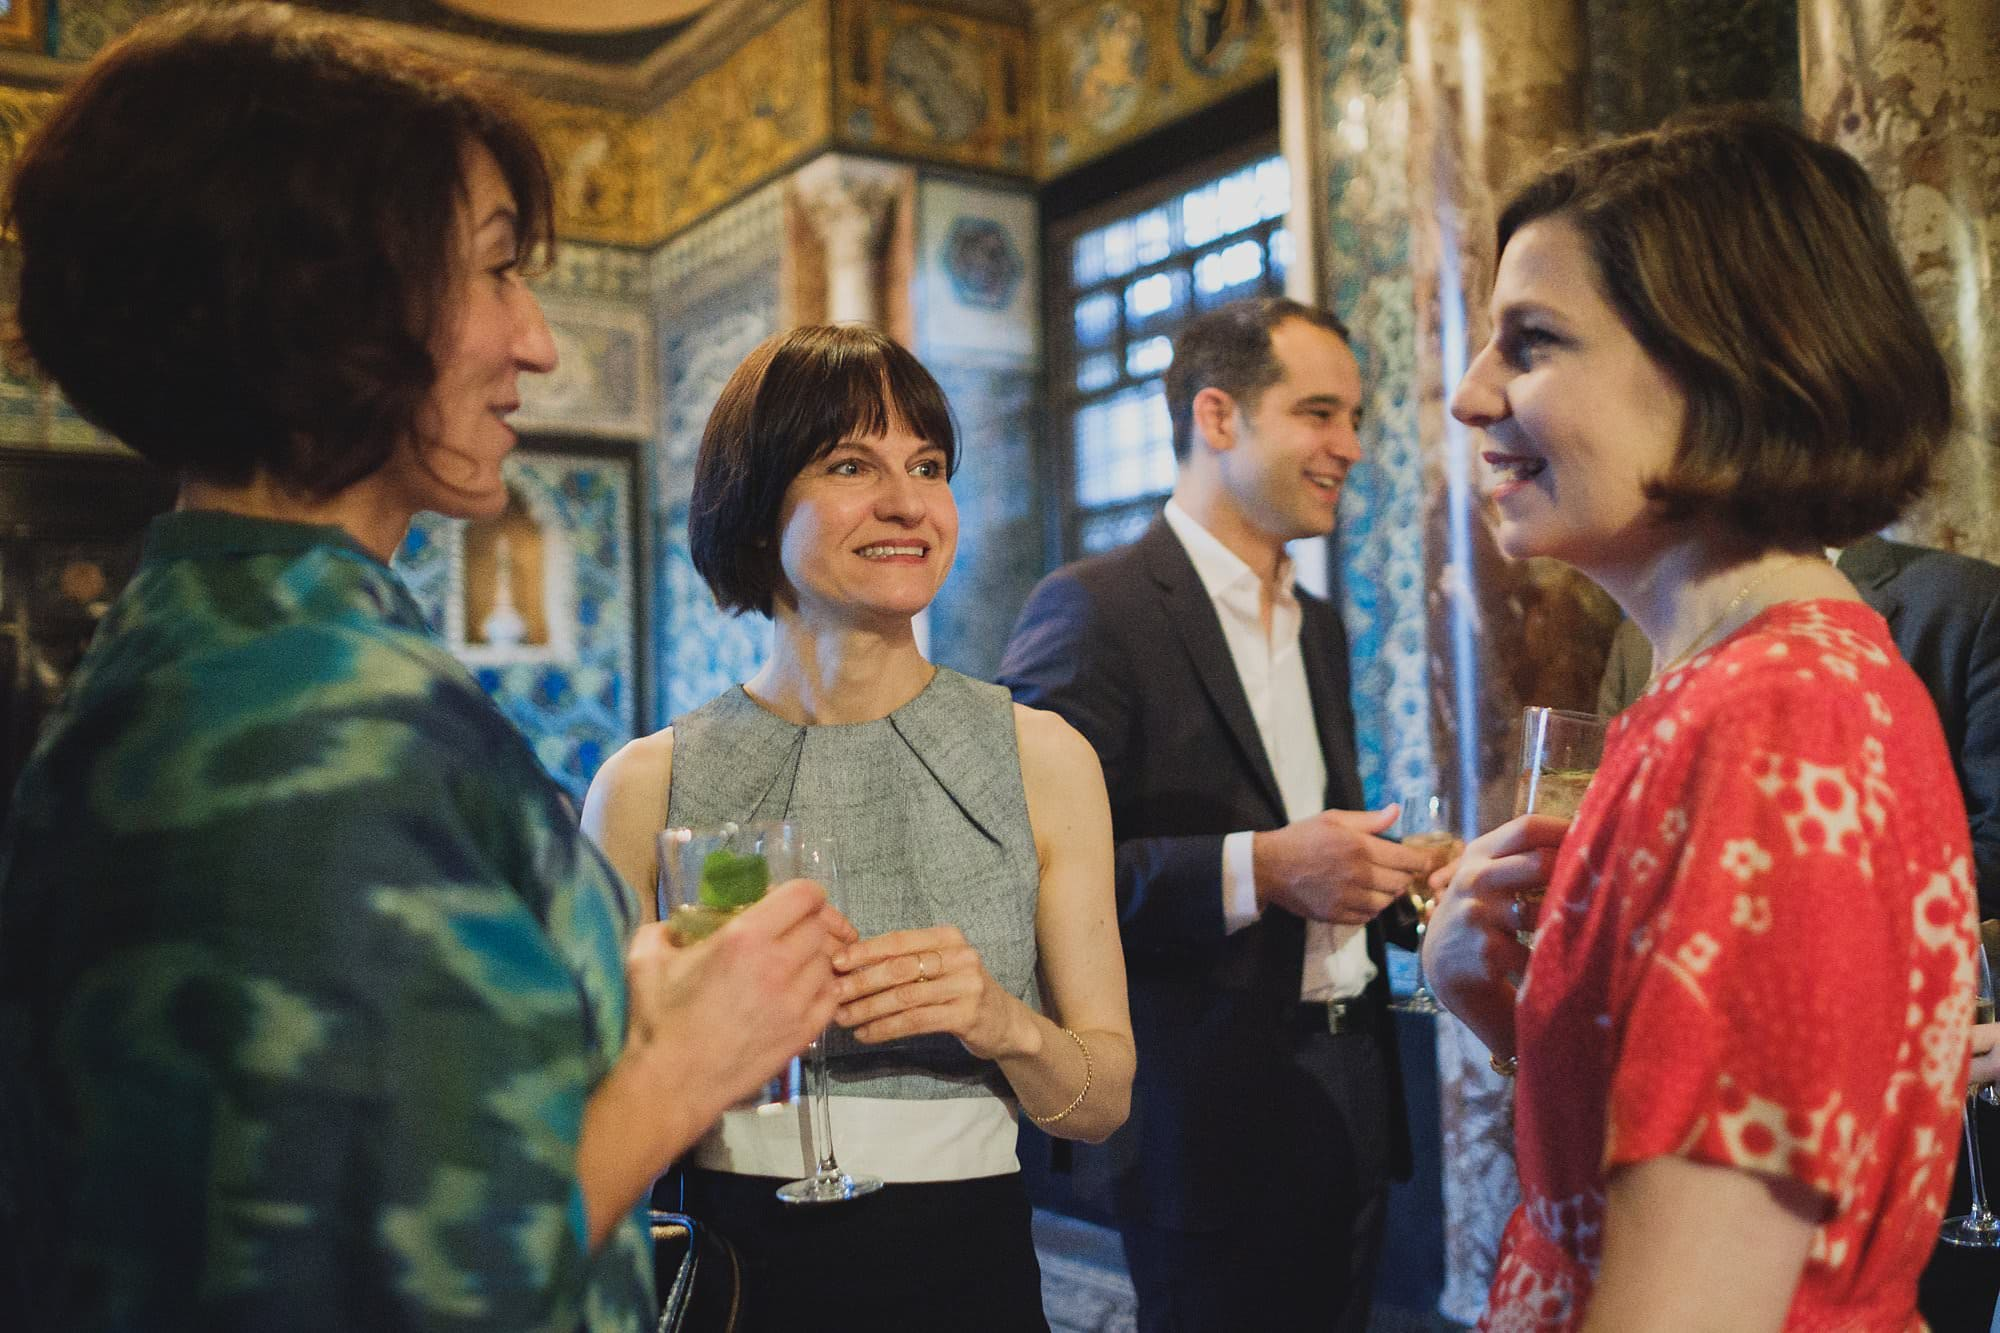 guests at a leighton house museum event